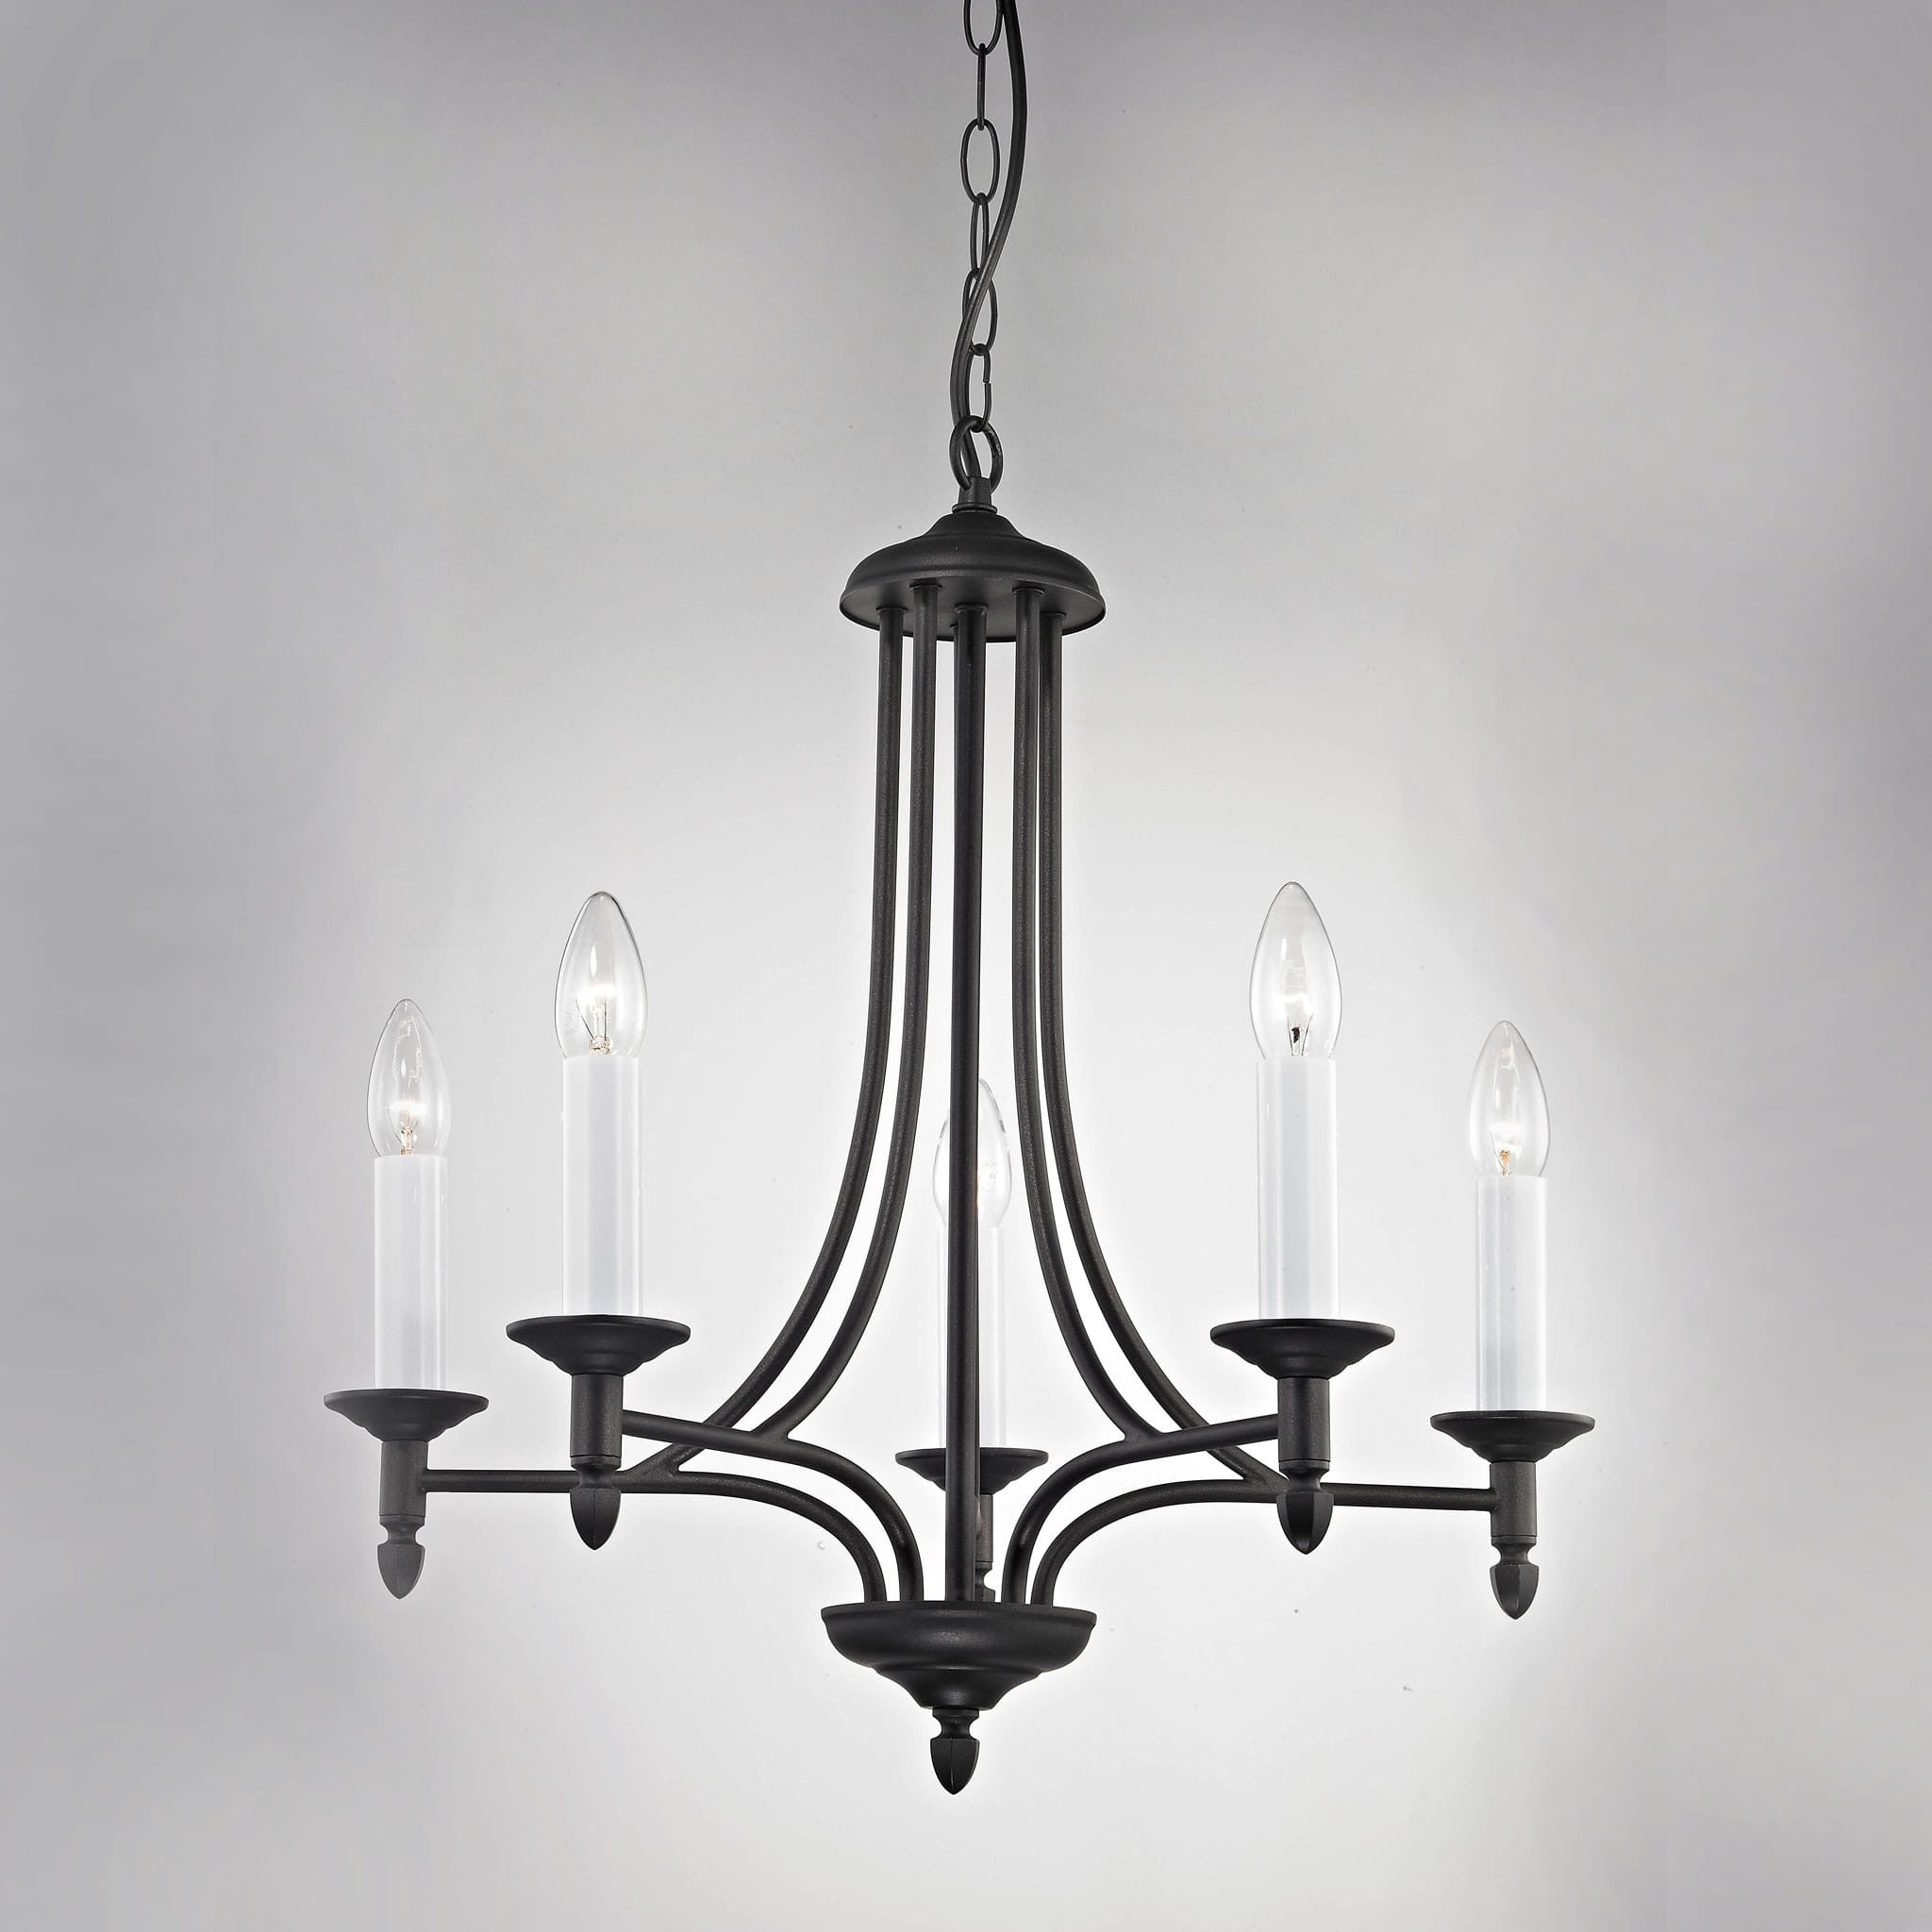 Impex canterbury 5 light black metal candle chandelier chandelier impex canterbury 5 light black metal candle chandelier smrr41120205blk arubaitofo Choice Image